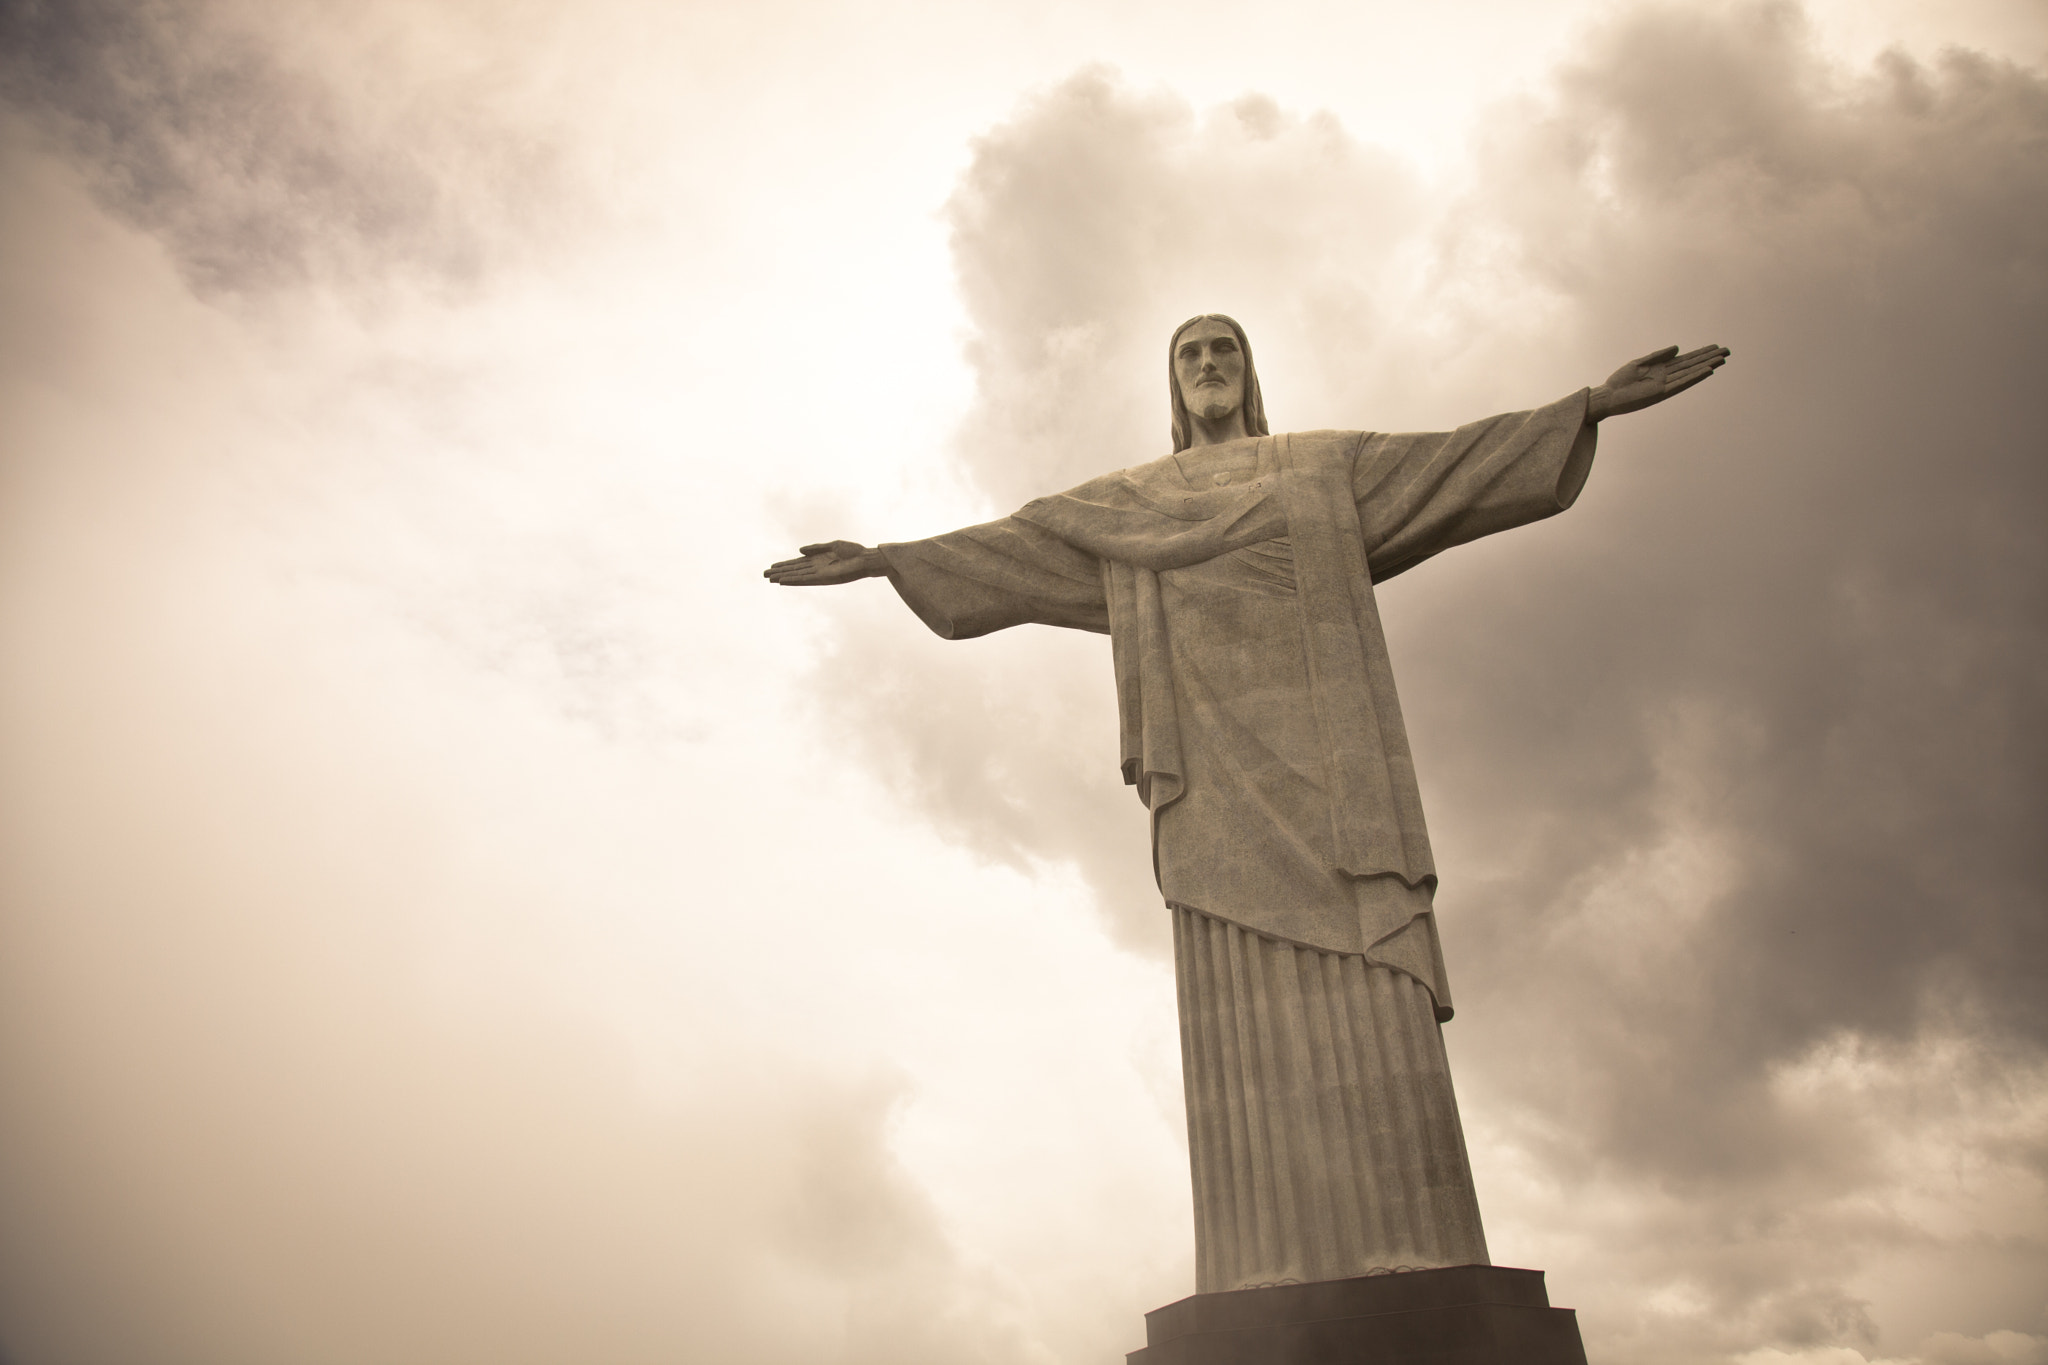 Photograph Cristo redentor by NDStudio Fotografi on 500px